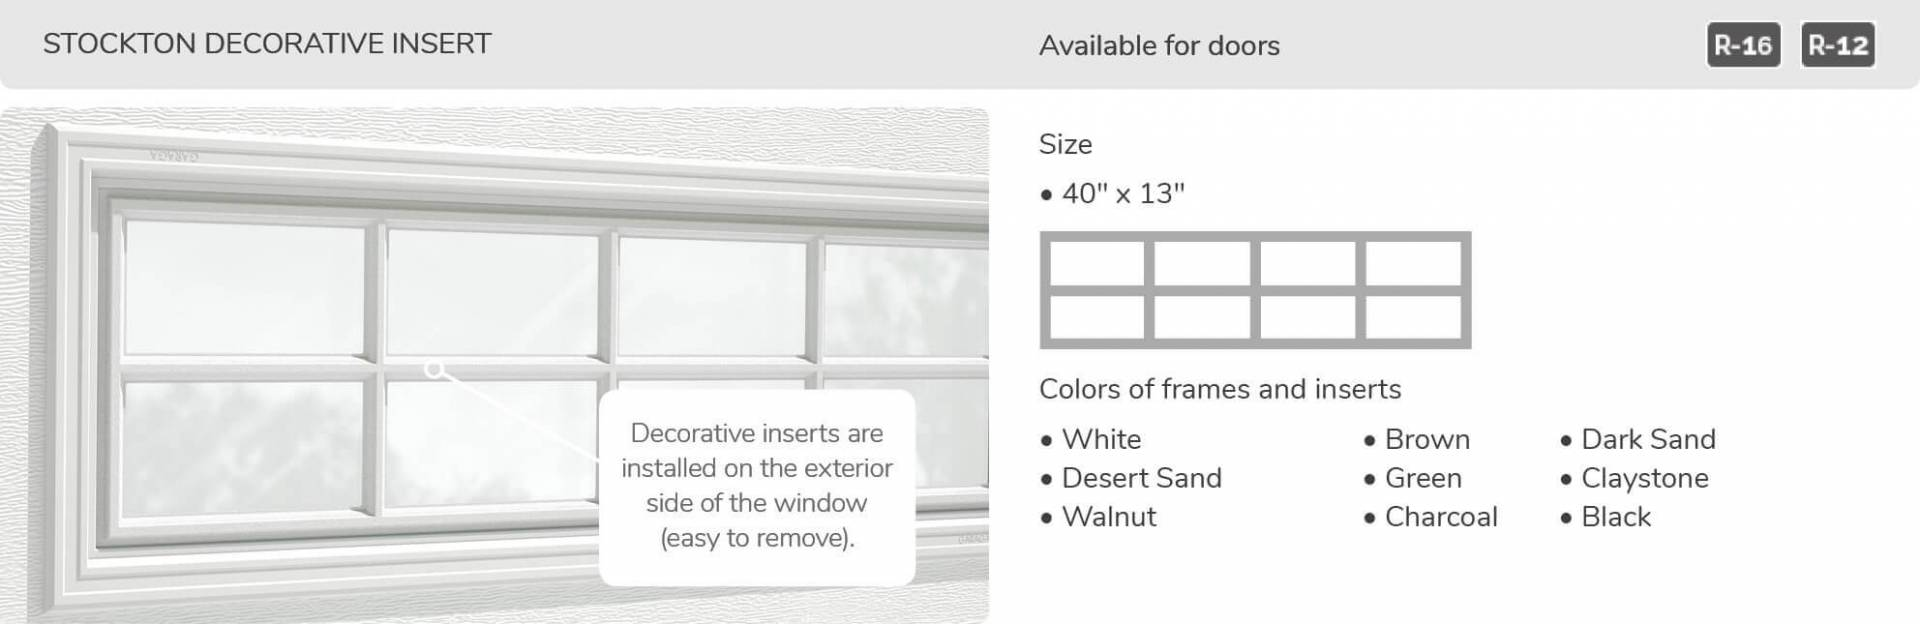 Stockton Decorative Insert, 40' x 13', available for doors R-16 and R-12